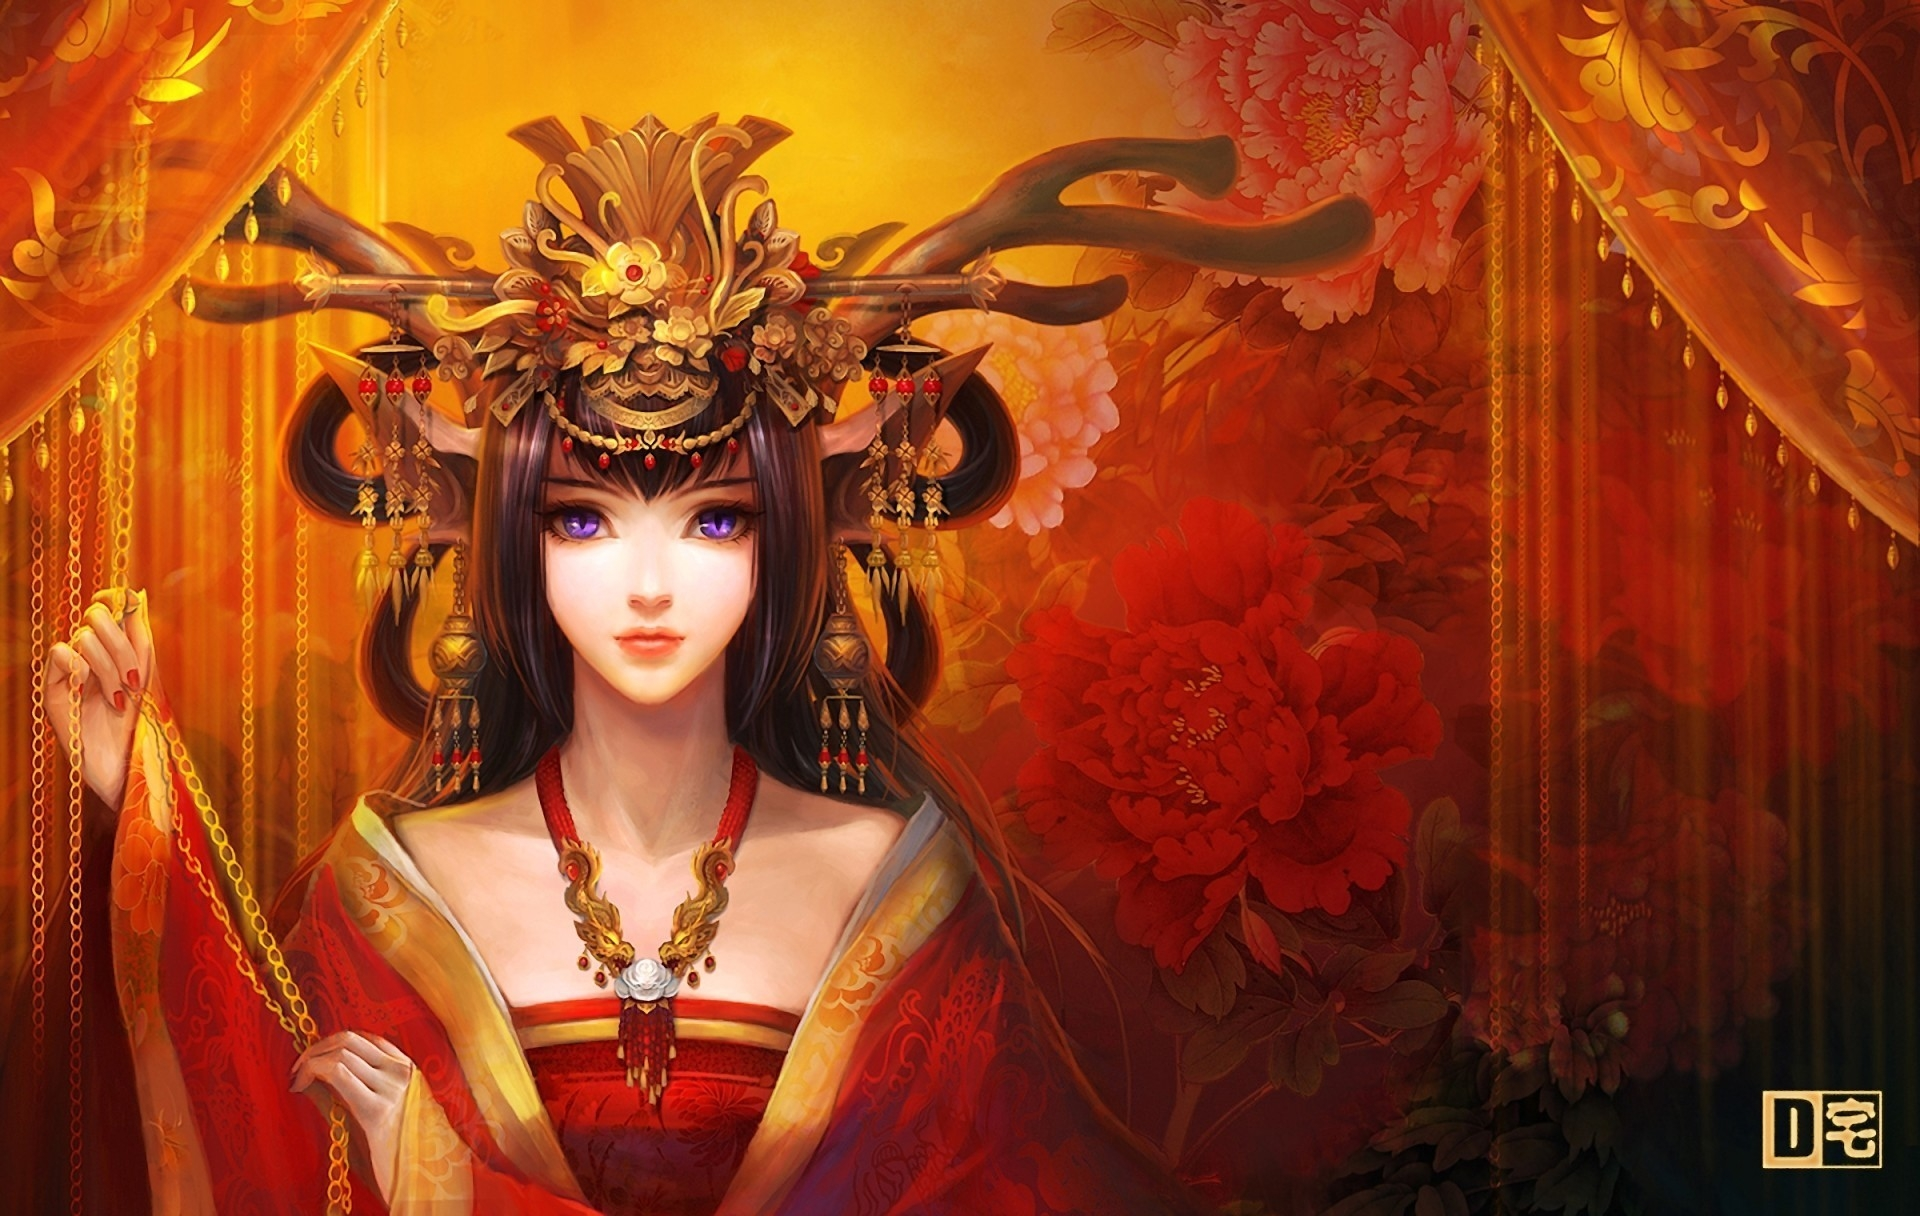 128451 download wallpaper Fantasy, Decorations, Eyes, Girl, Curtains, Kimono, Hairstyle, Hairdo screensavers and pictures for free